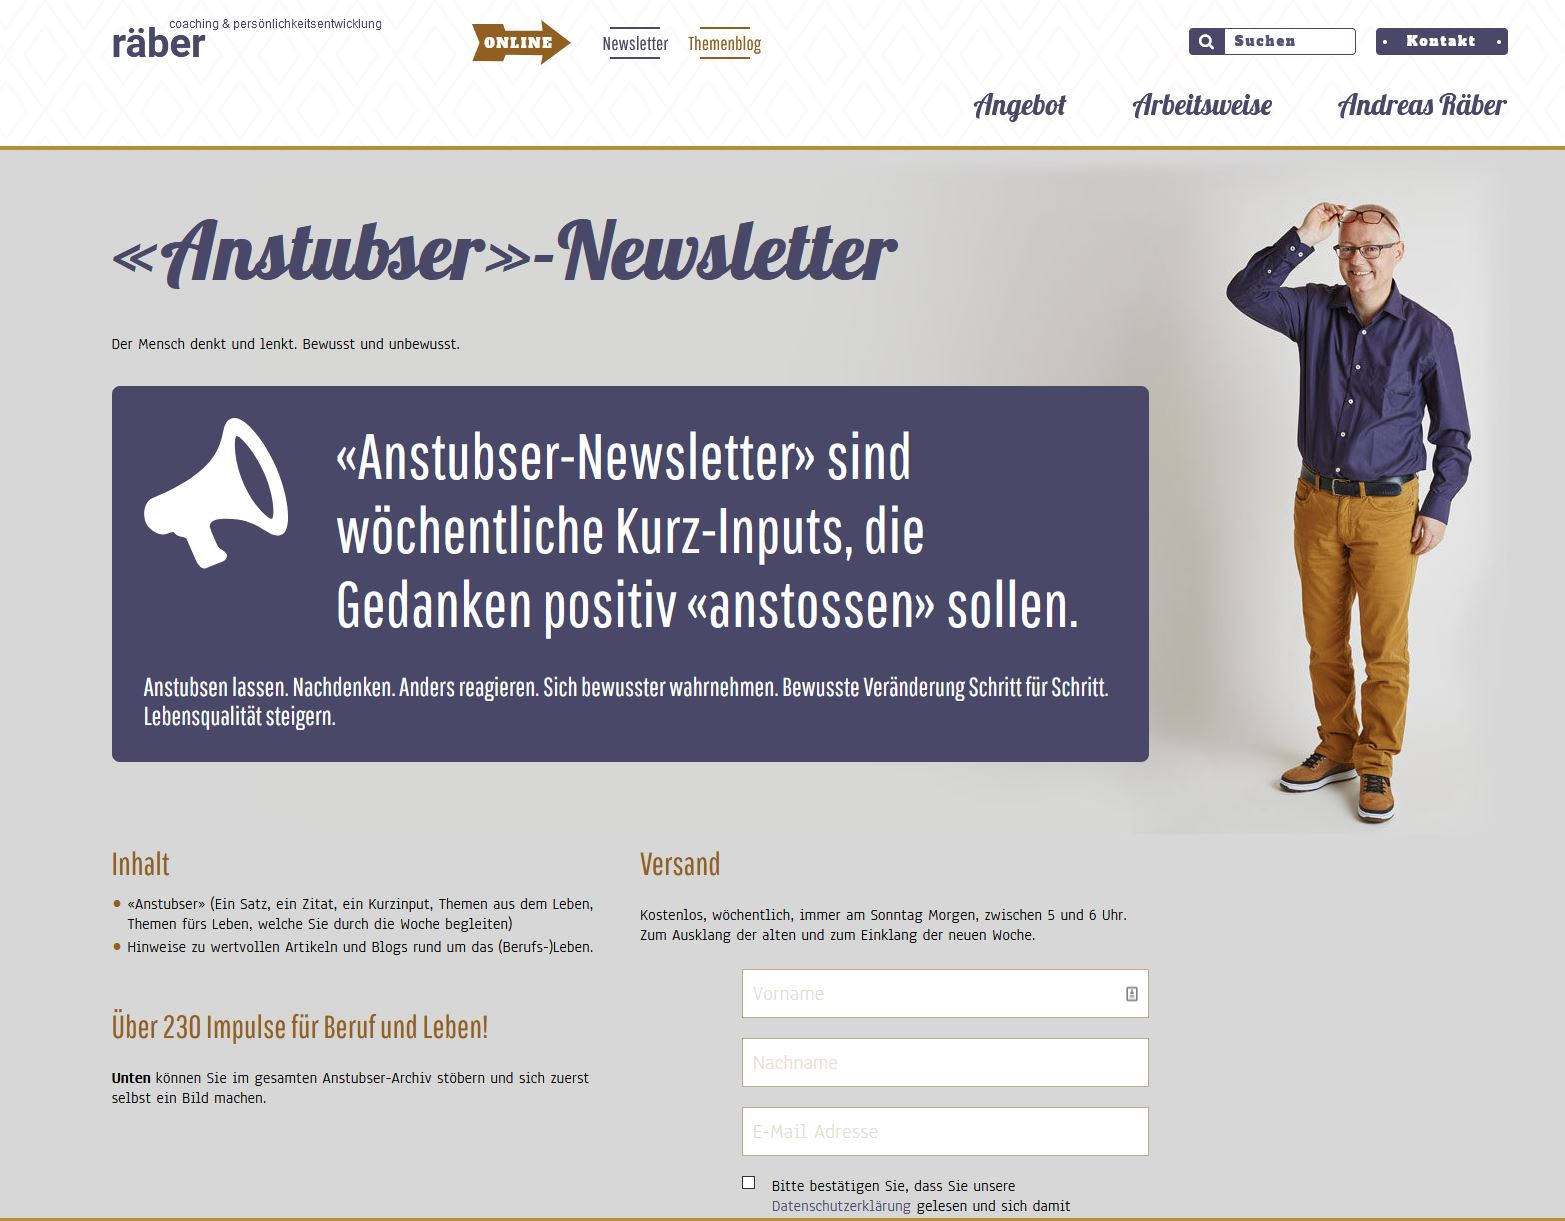 Newsletter-Marketing - Wirksames Online Marketing Instrumen für KMU